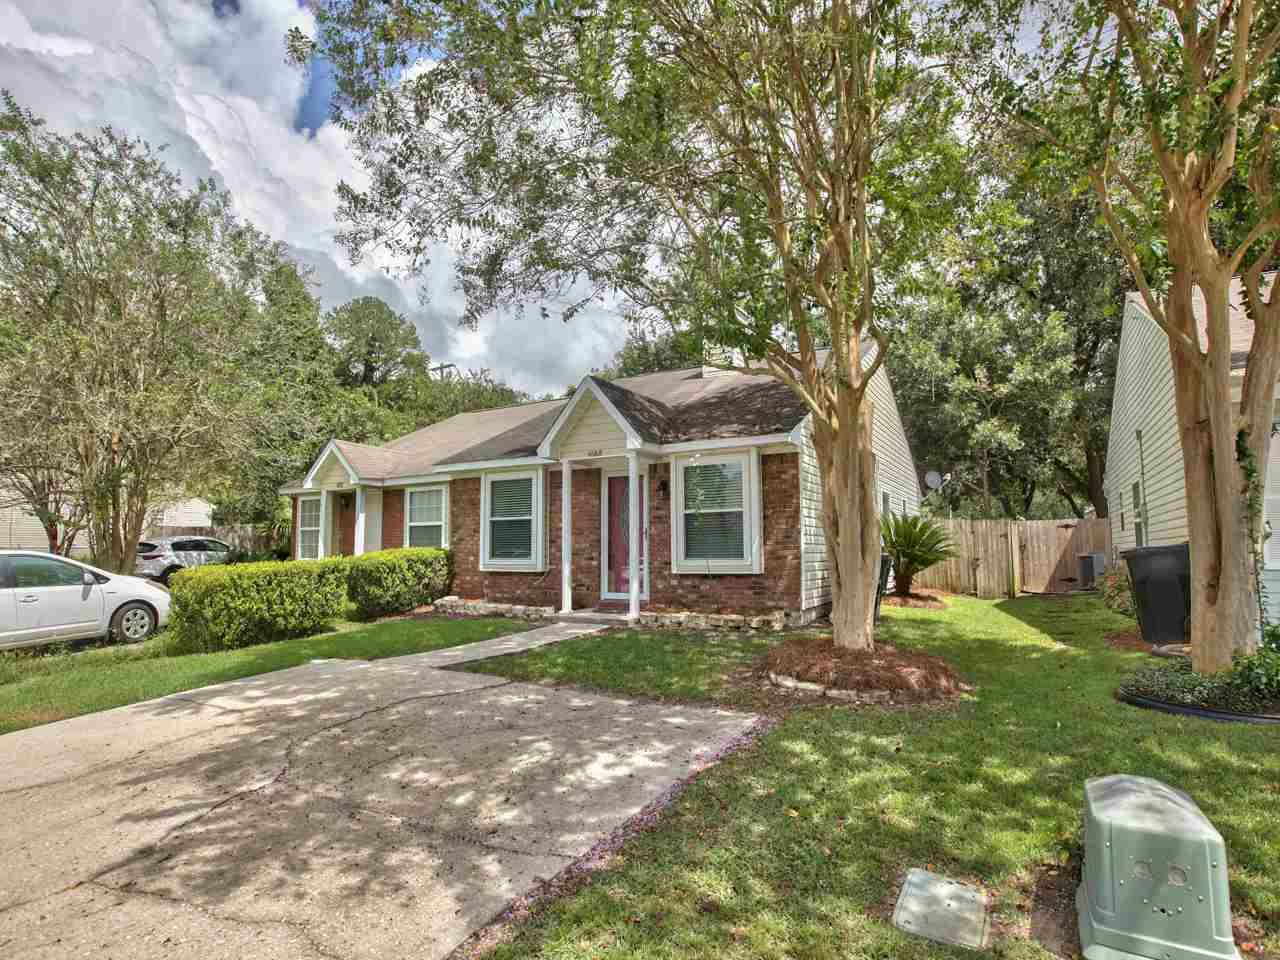 Photo of 4088 REMER COURT, TALLAHASSEE, FL 32303 (MLS # 323607)